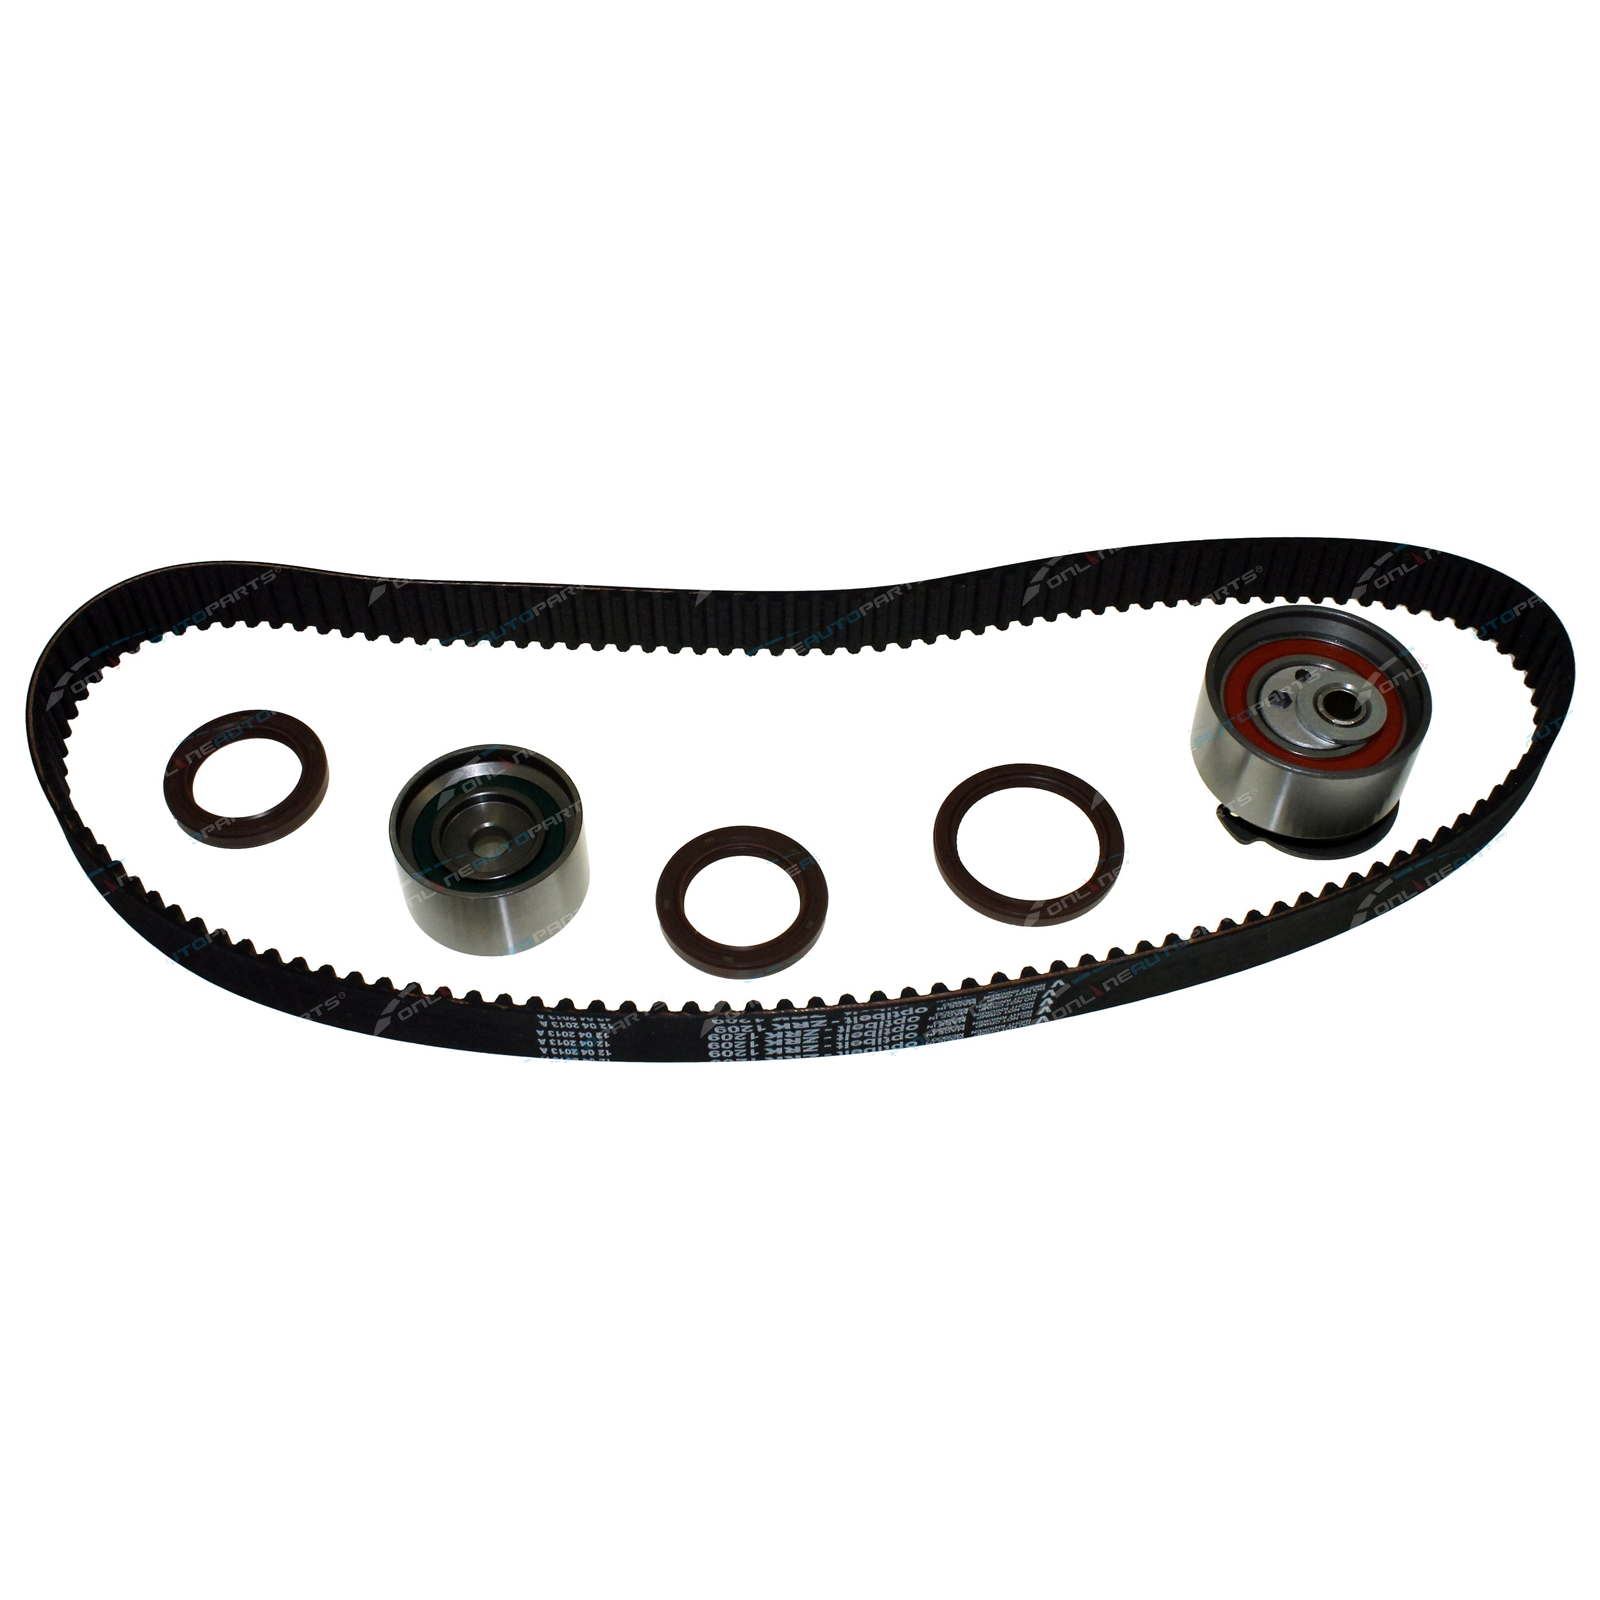 Timing Belt + Tensioner Kit Laser KN KQ 1999-2002 4cyl FP 1.8L 1840cc MPI 16v DOHC Engine - Ford